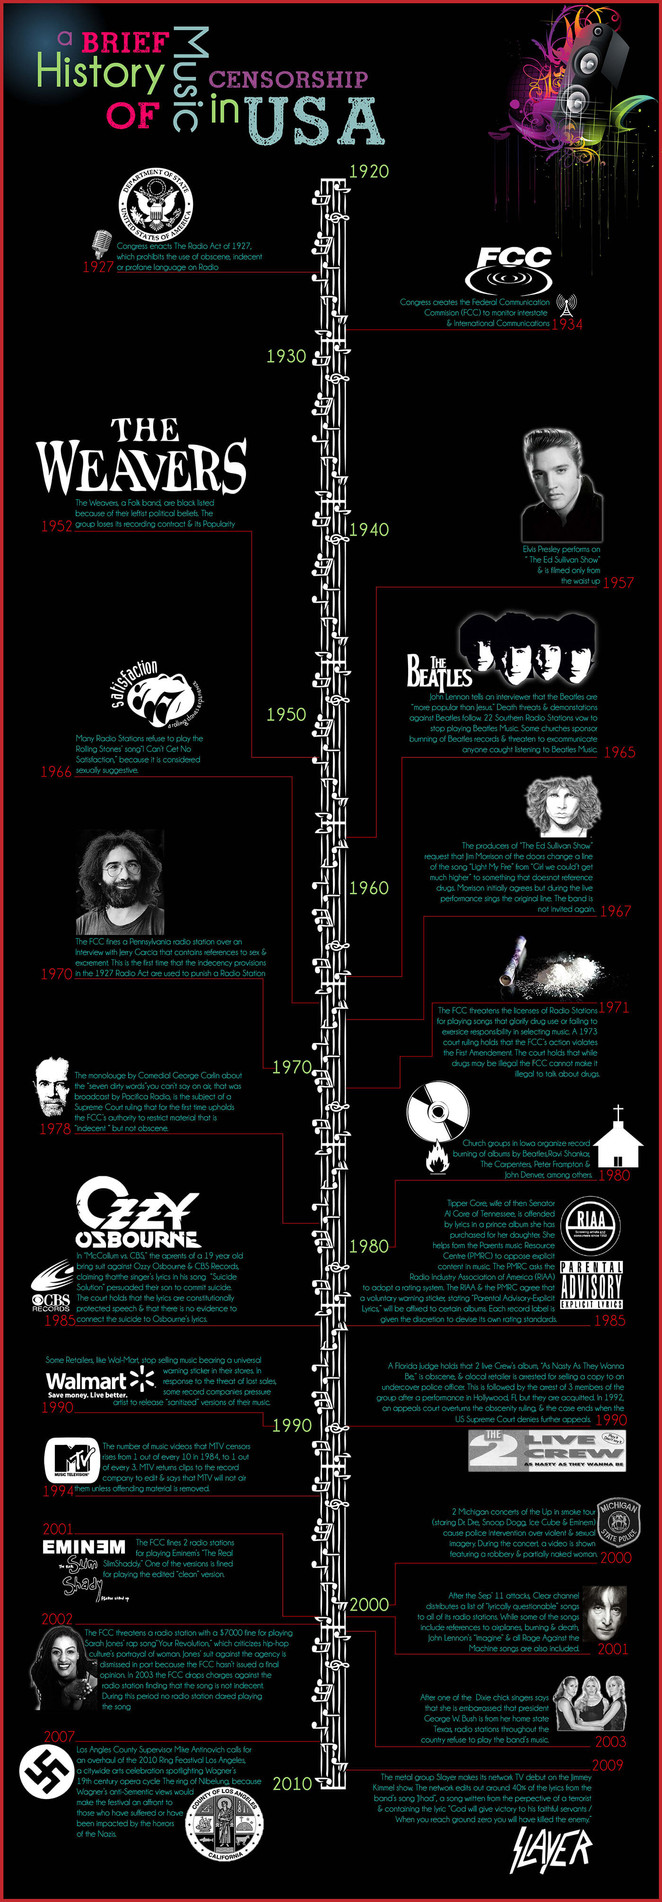 Brief History of Music Censorship In USA